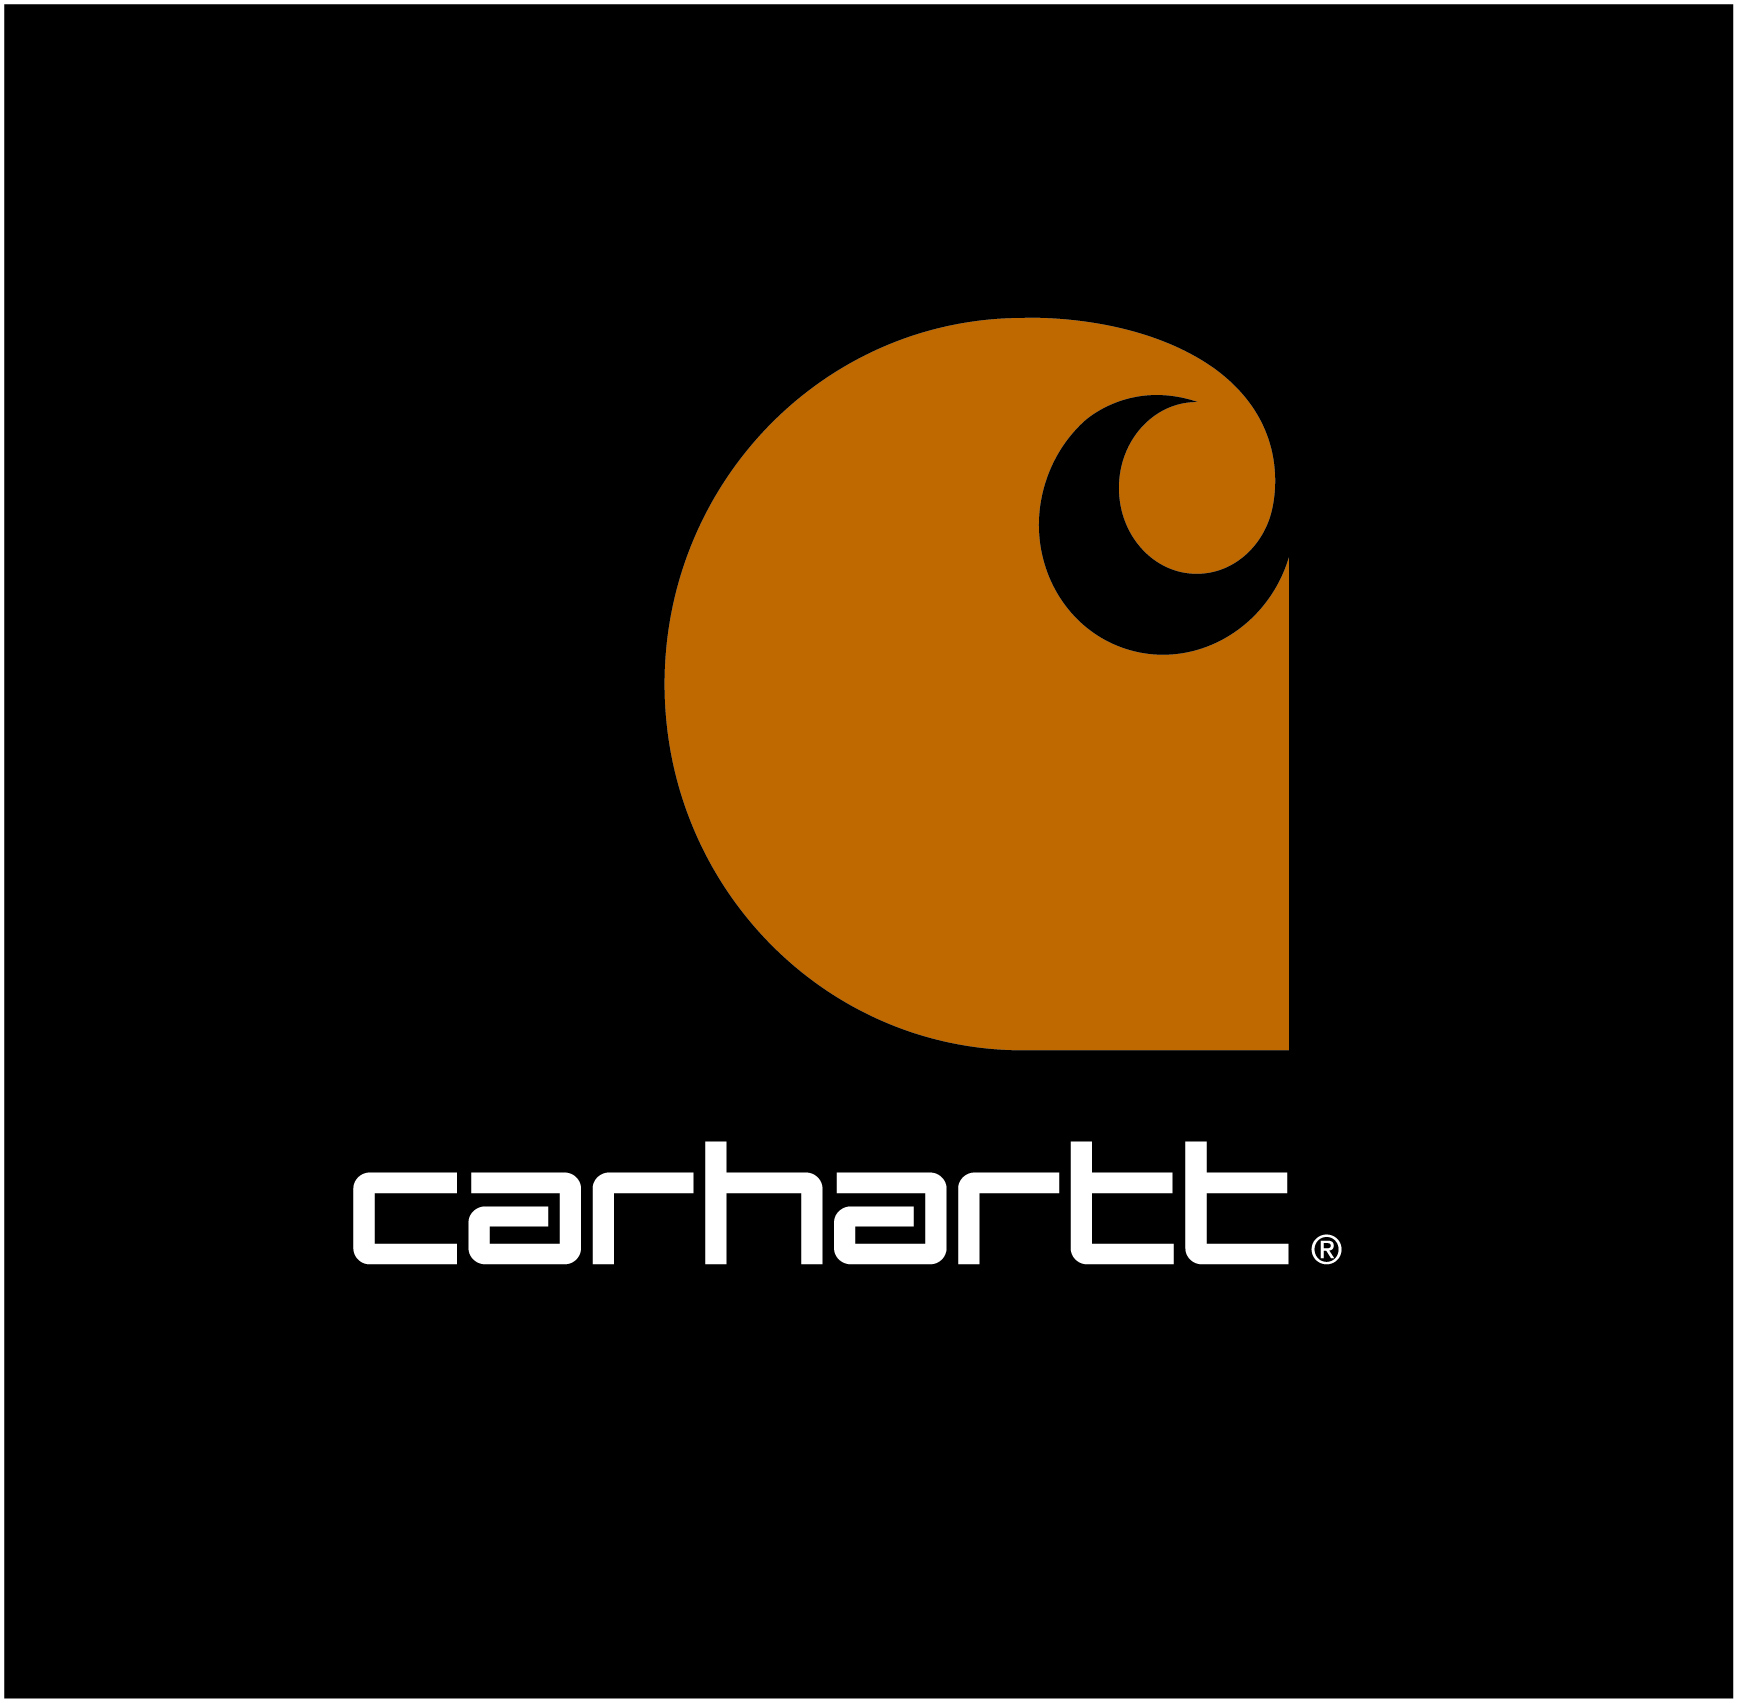 Carhartt_Logo-brwn with blk square backdrop.jpg